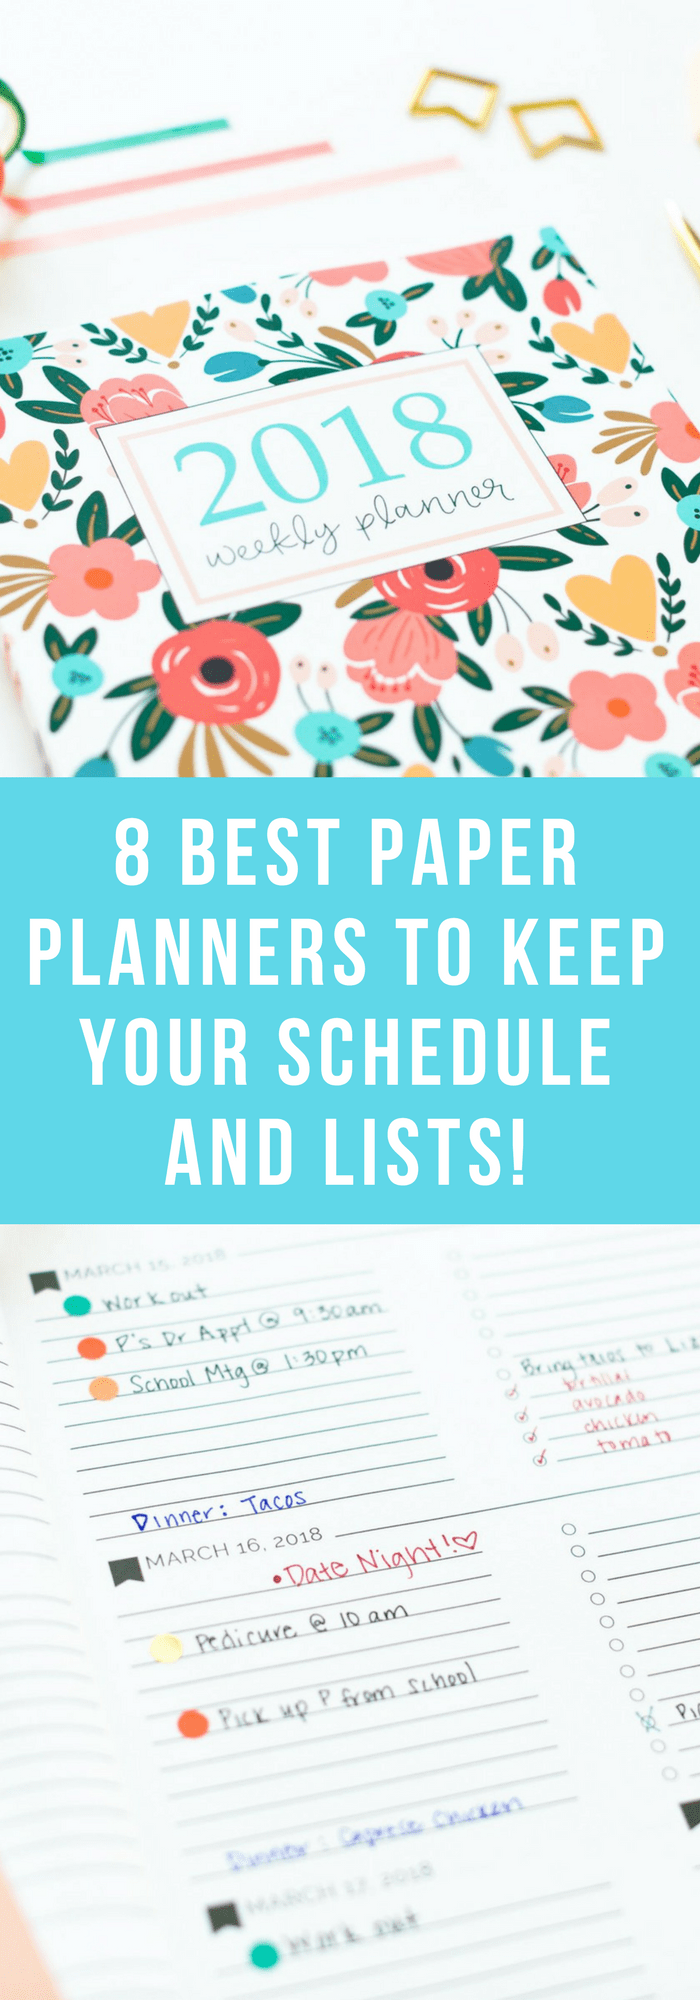 Organization--8 Best Paper Planners to Keep Your Schedule and Lists--The Organized Mom